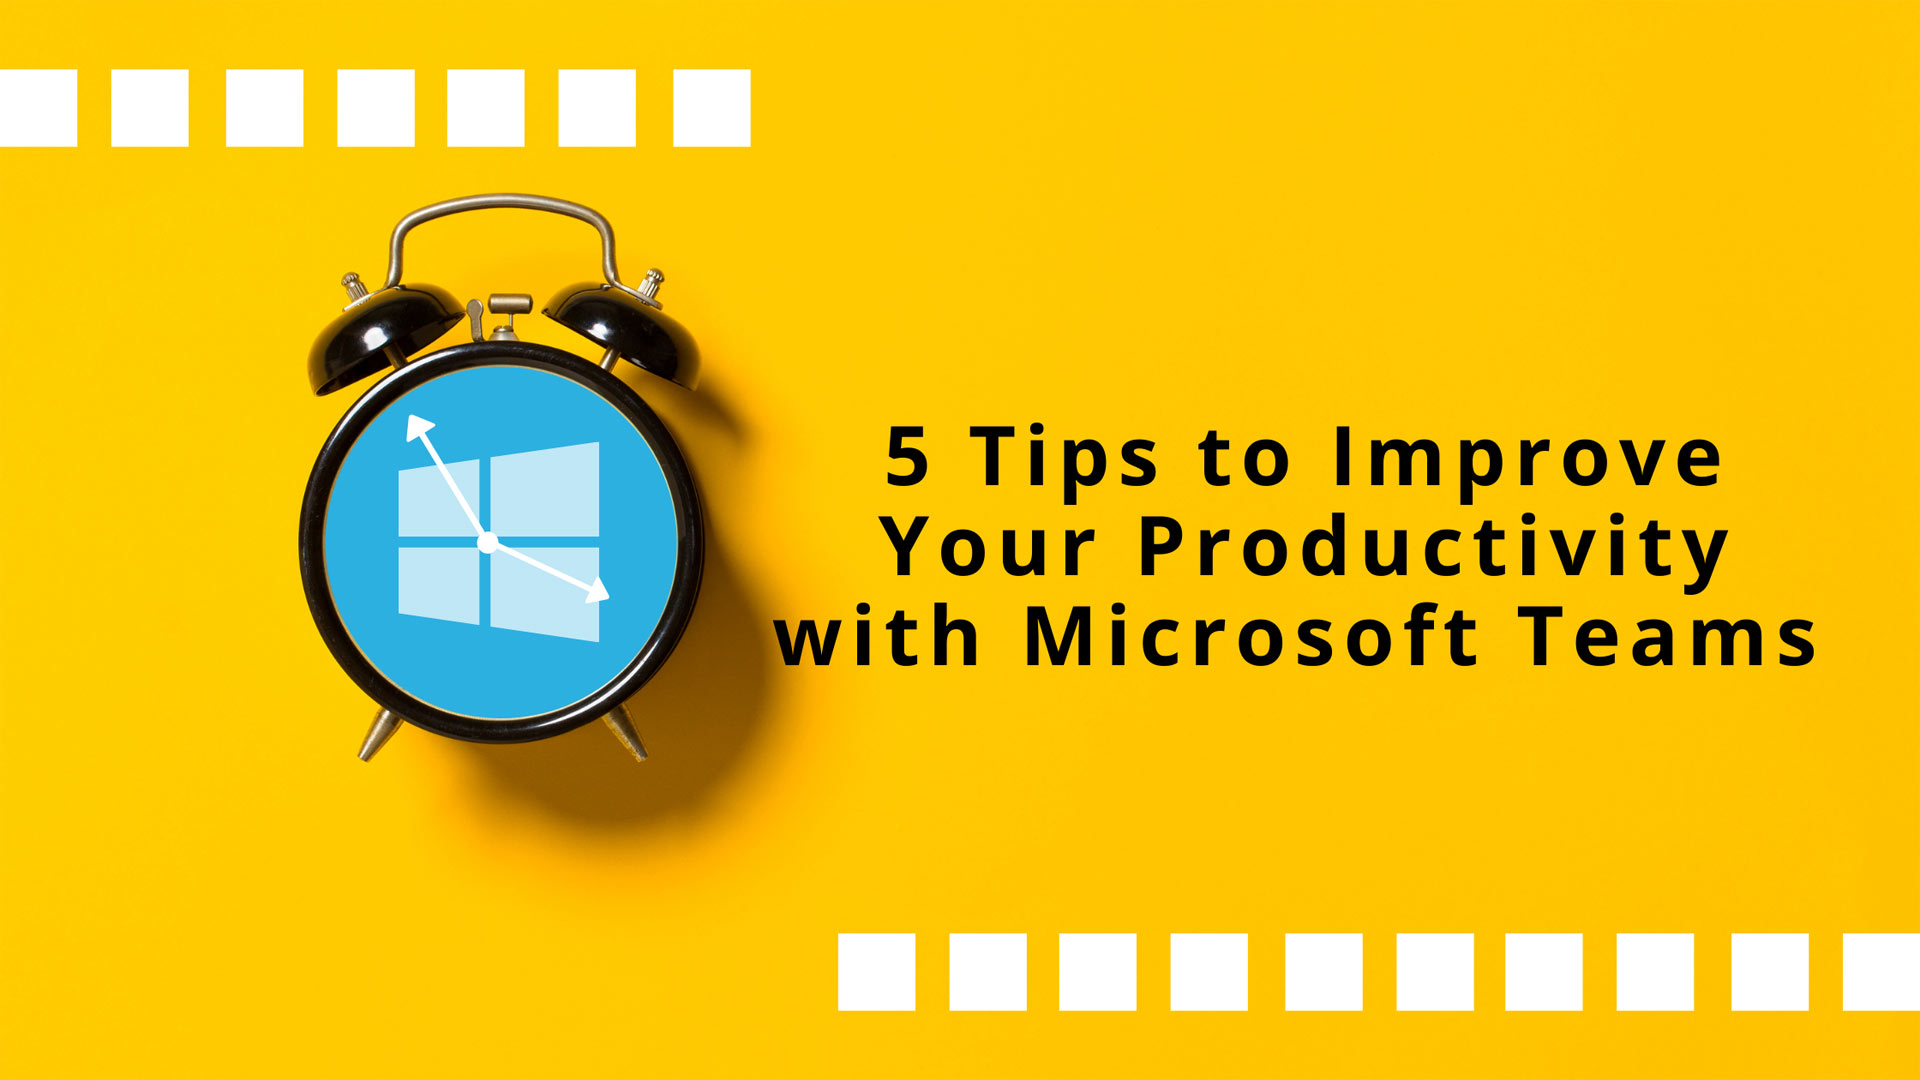 5 Tips to Improve Your Productivity Microsoft Teams